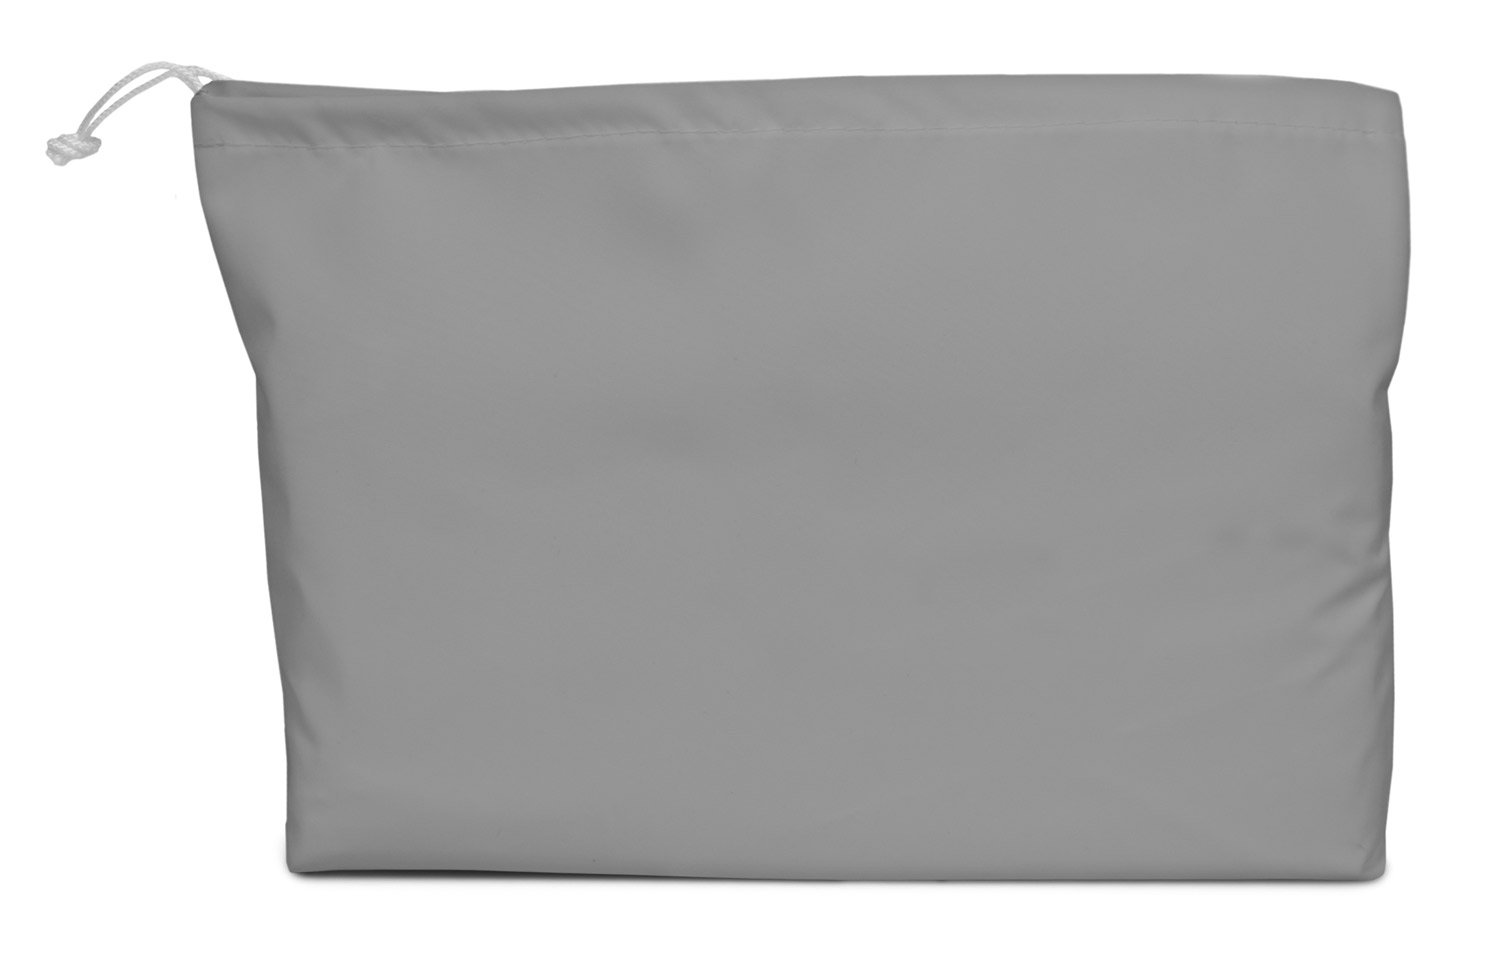 KoverRoos Weathermax 84214 6-Feet Garden Seat Cover, 72-Inch Width by 28-Inch Diameter by 18-Inch Height, Charcoal by KOVERROOS (Image #1)